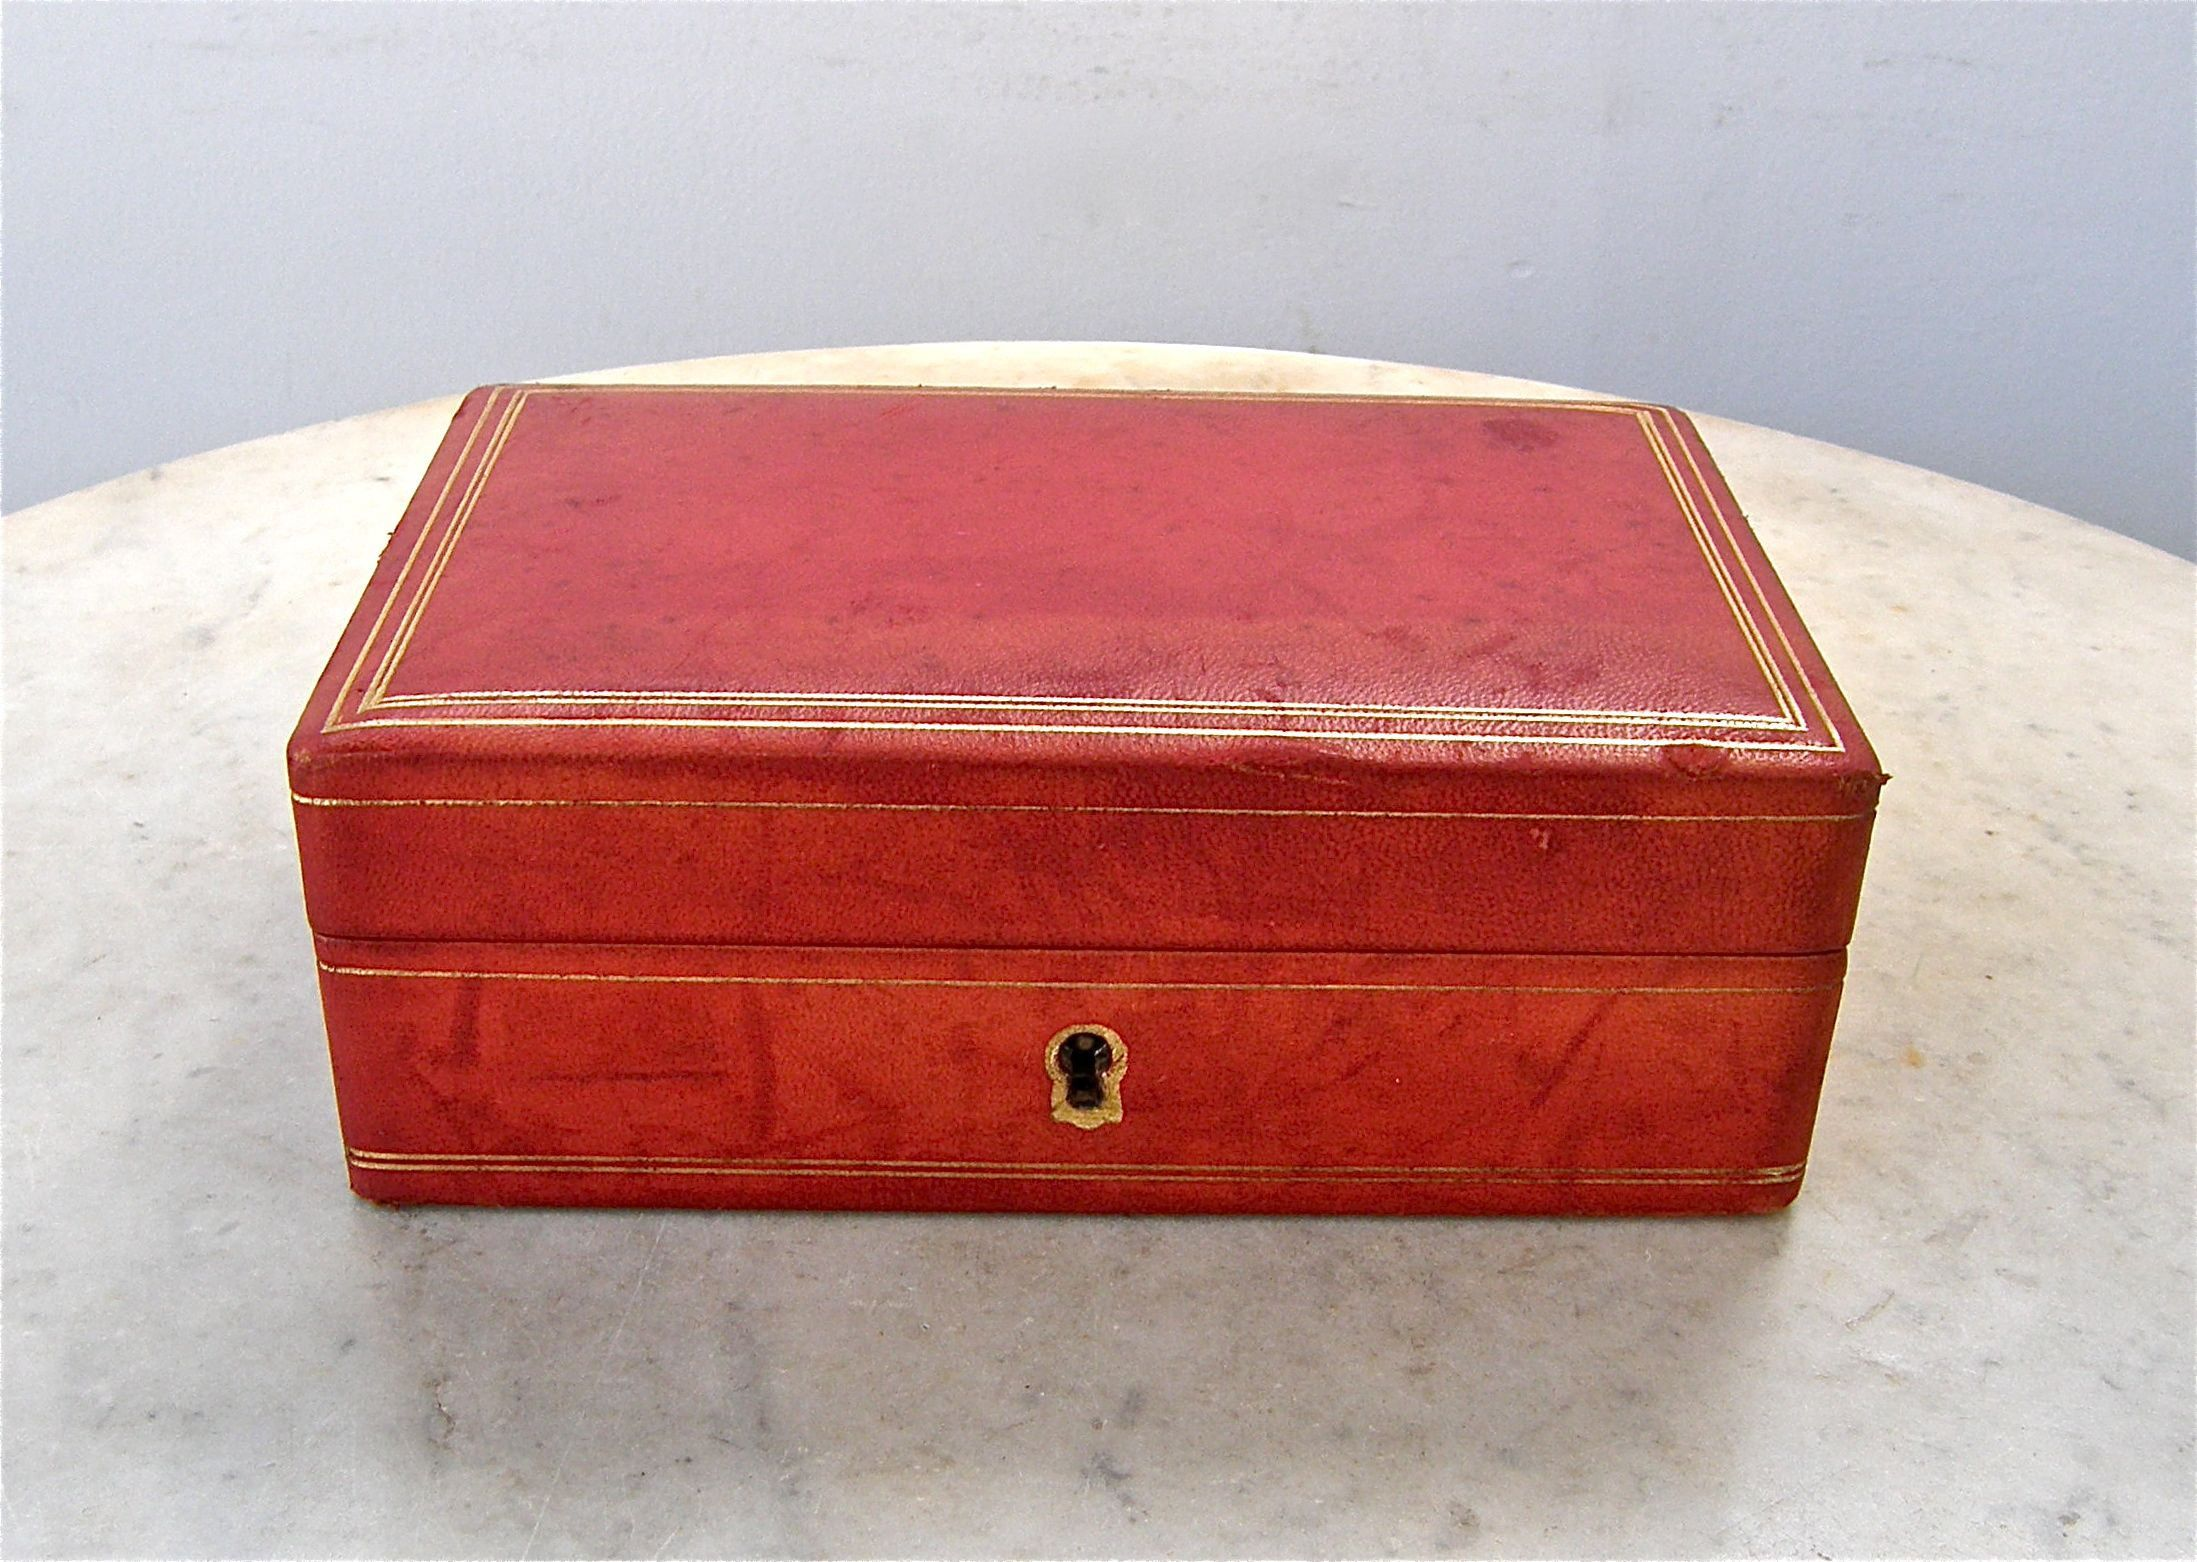 Leather Jewelry Box Trinket Case Red Gold Striped Border Red Etsy Leather Jewelry Box Velvet Interiors Gold Stripes